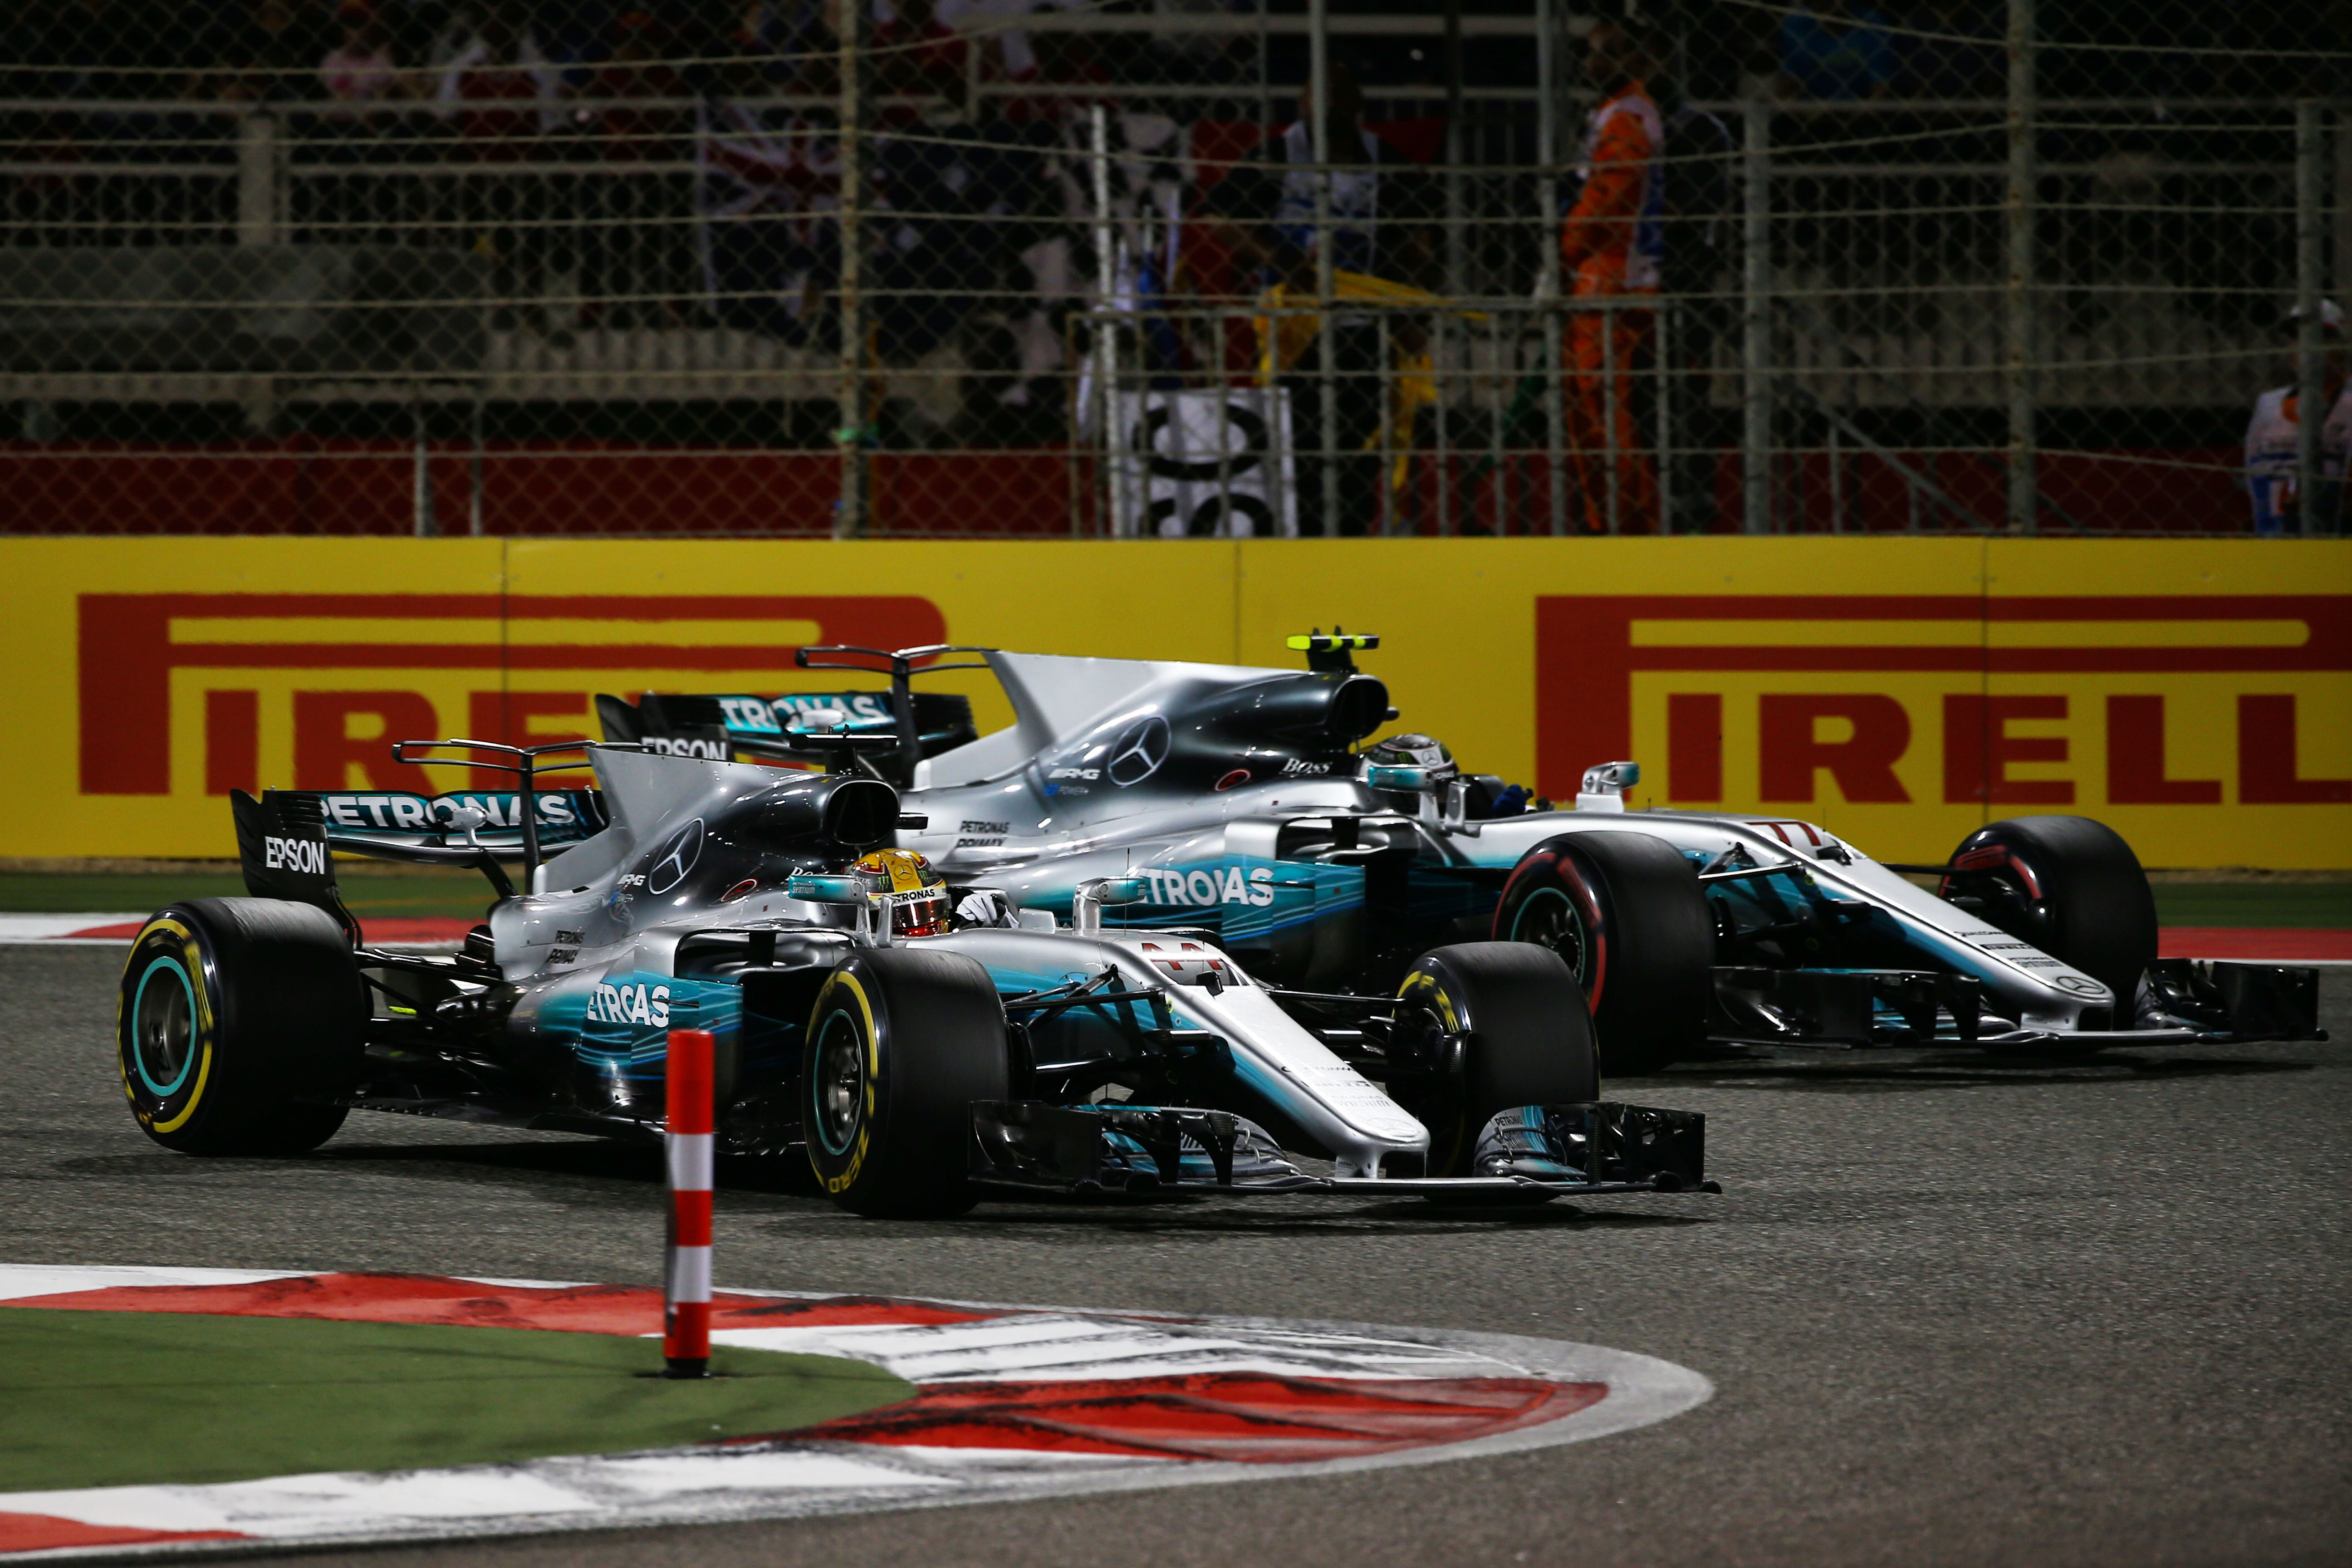 marcos formula 1 page lots of information about formula 1